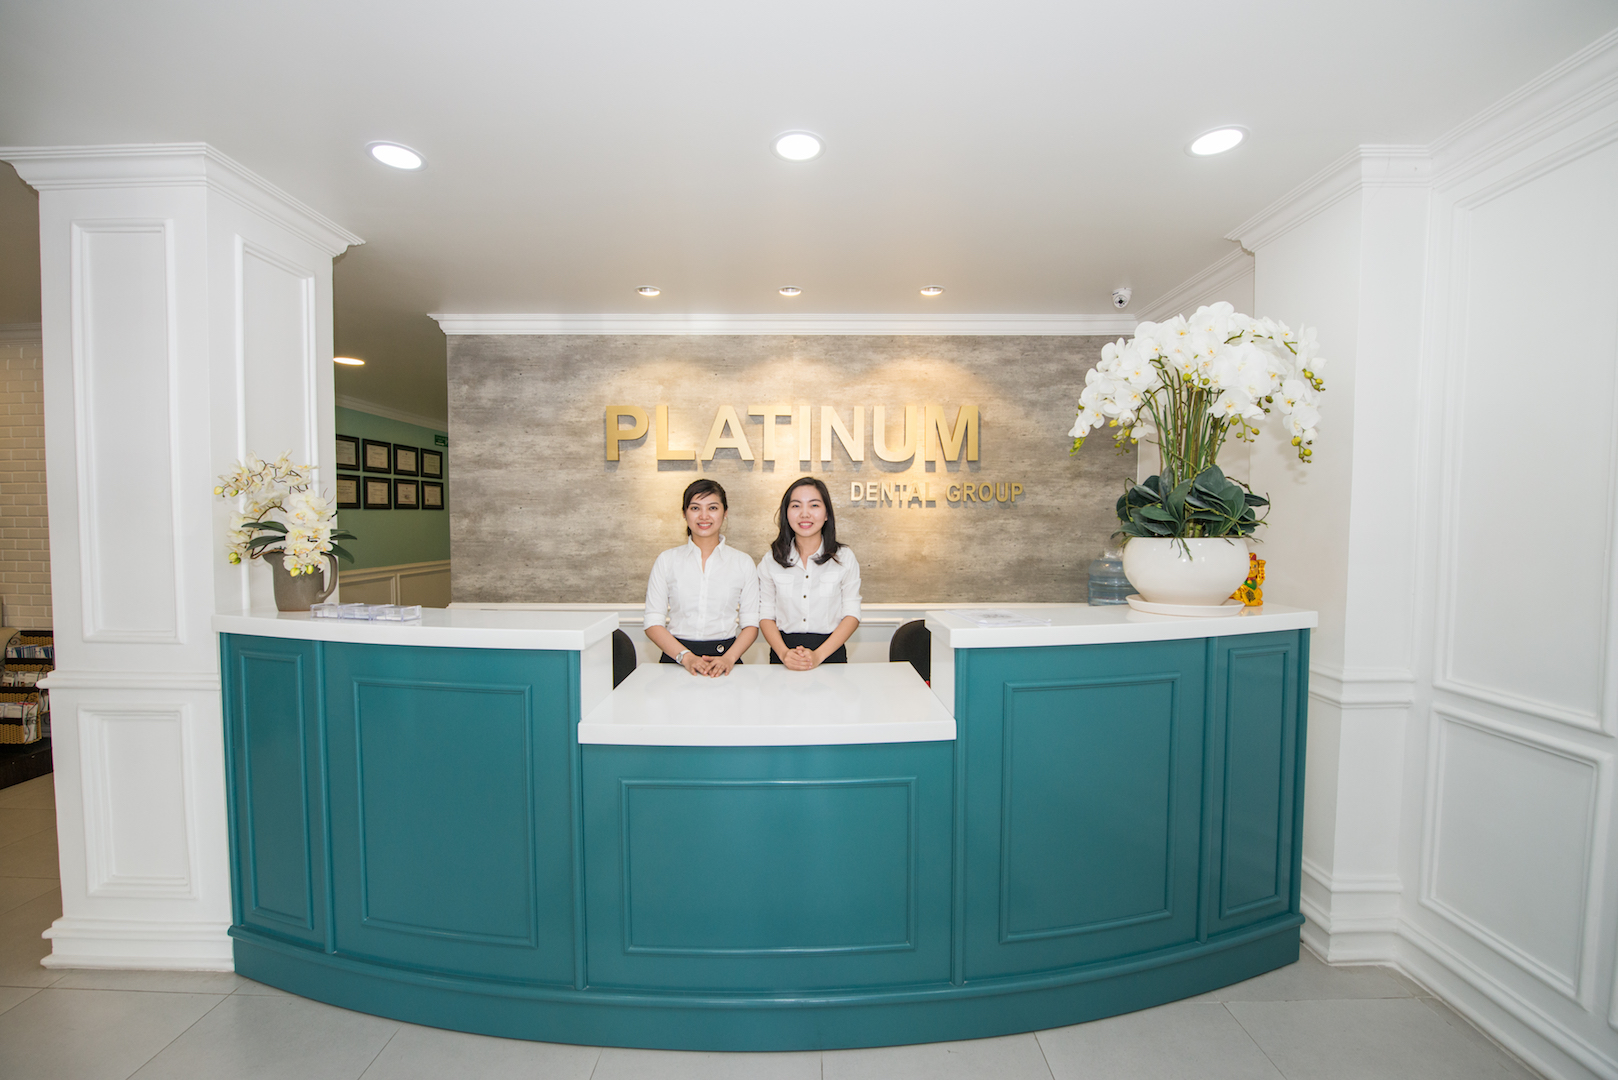 Platinum Dental Group - Vietnam